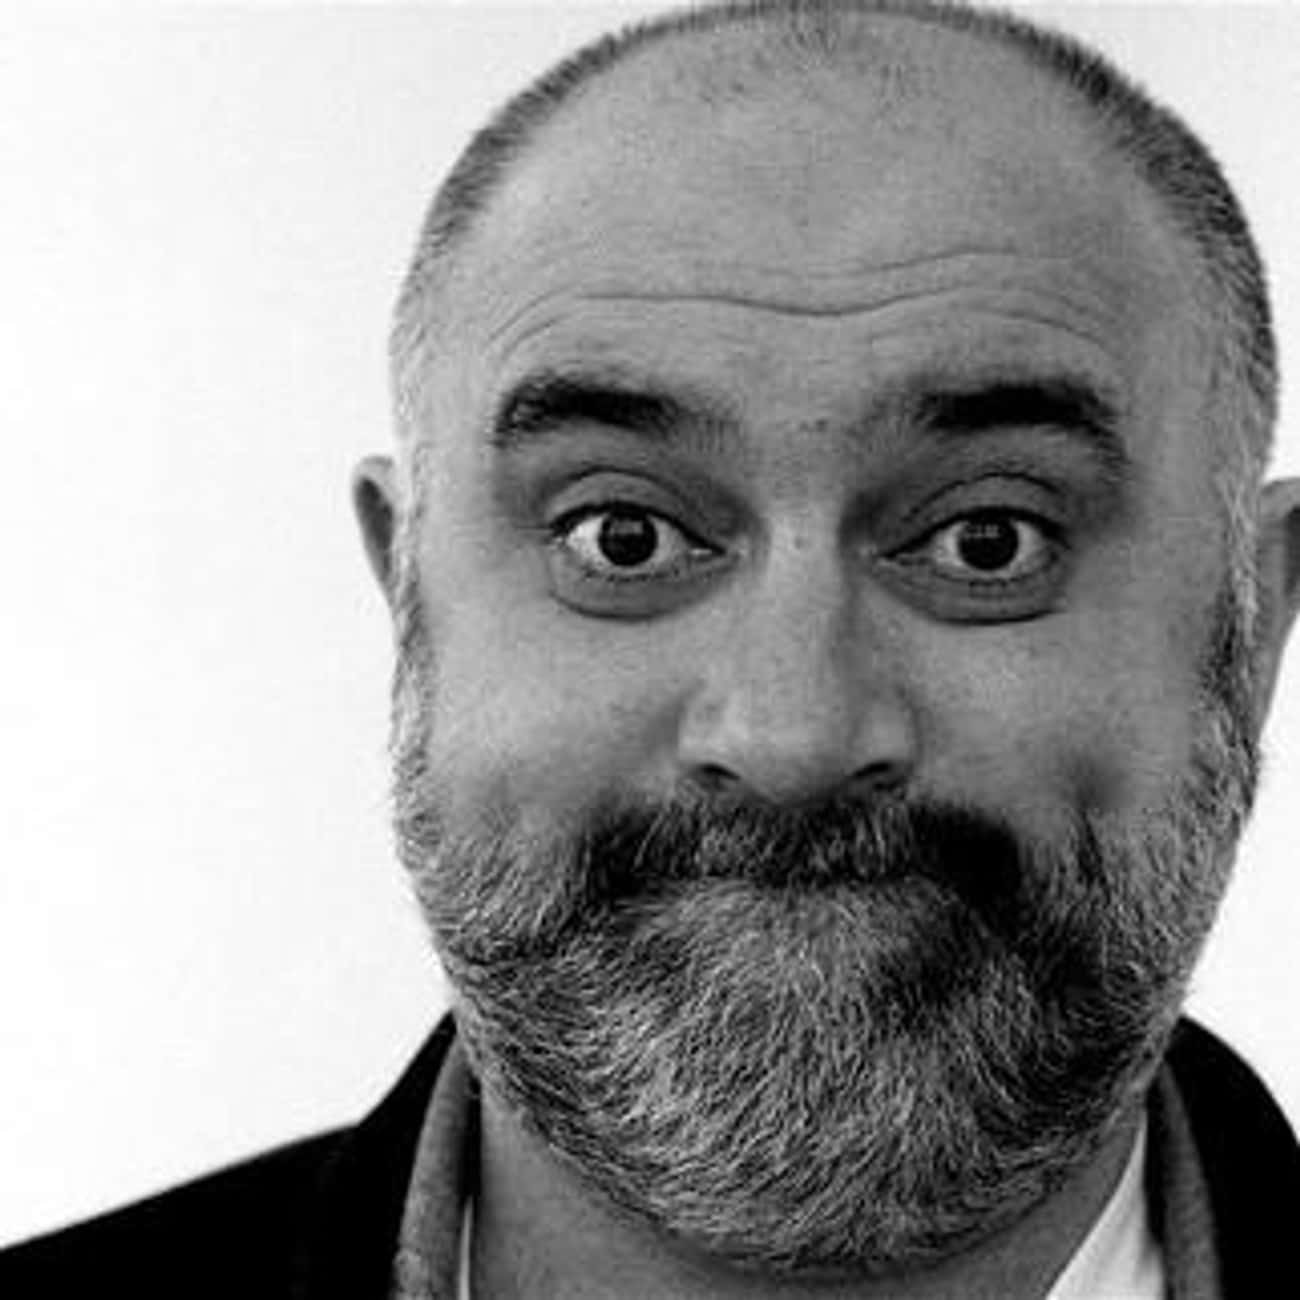 Alexei Sayle is listed (or ranked) 1 on the list Horrible Histories Cast List